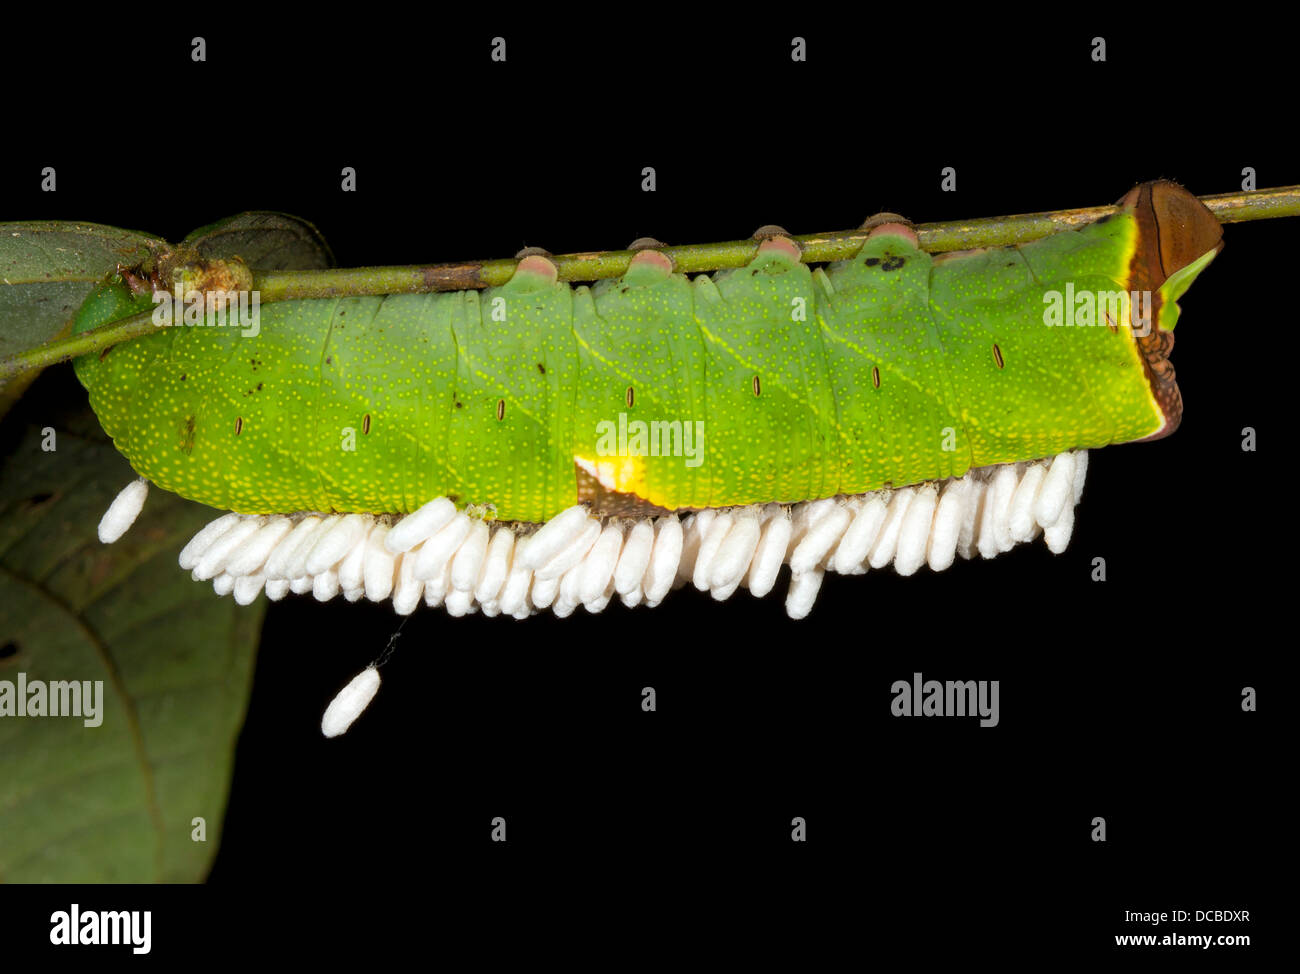 Caterpillar parasitized by Ichneumon wasp, the wasp pupae are hanging under the caterpillar, In the rainforest, - Stock Image